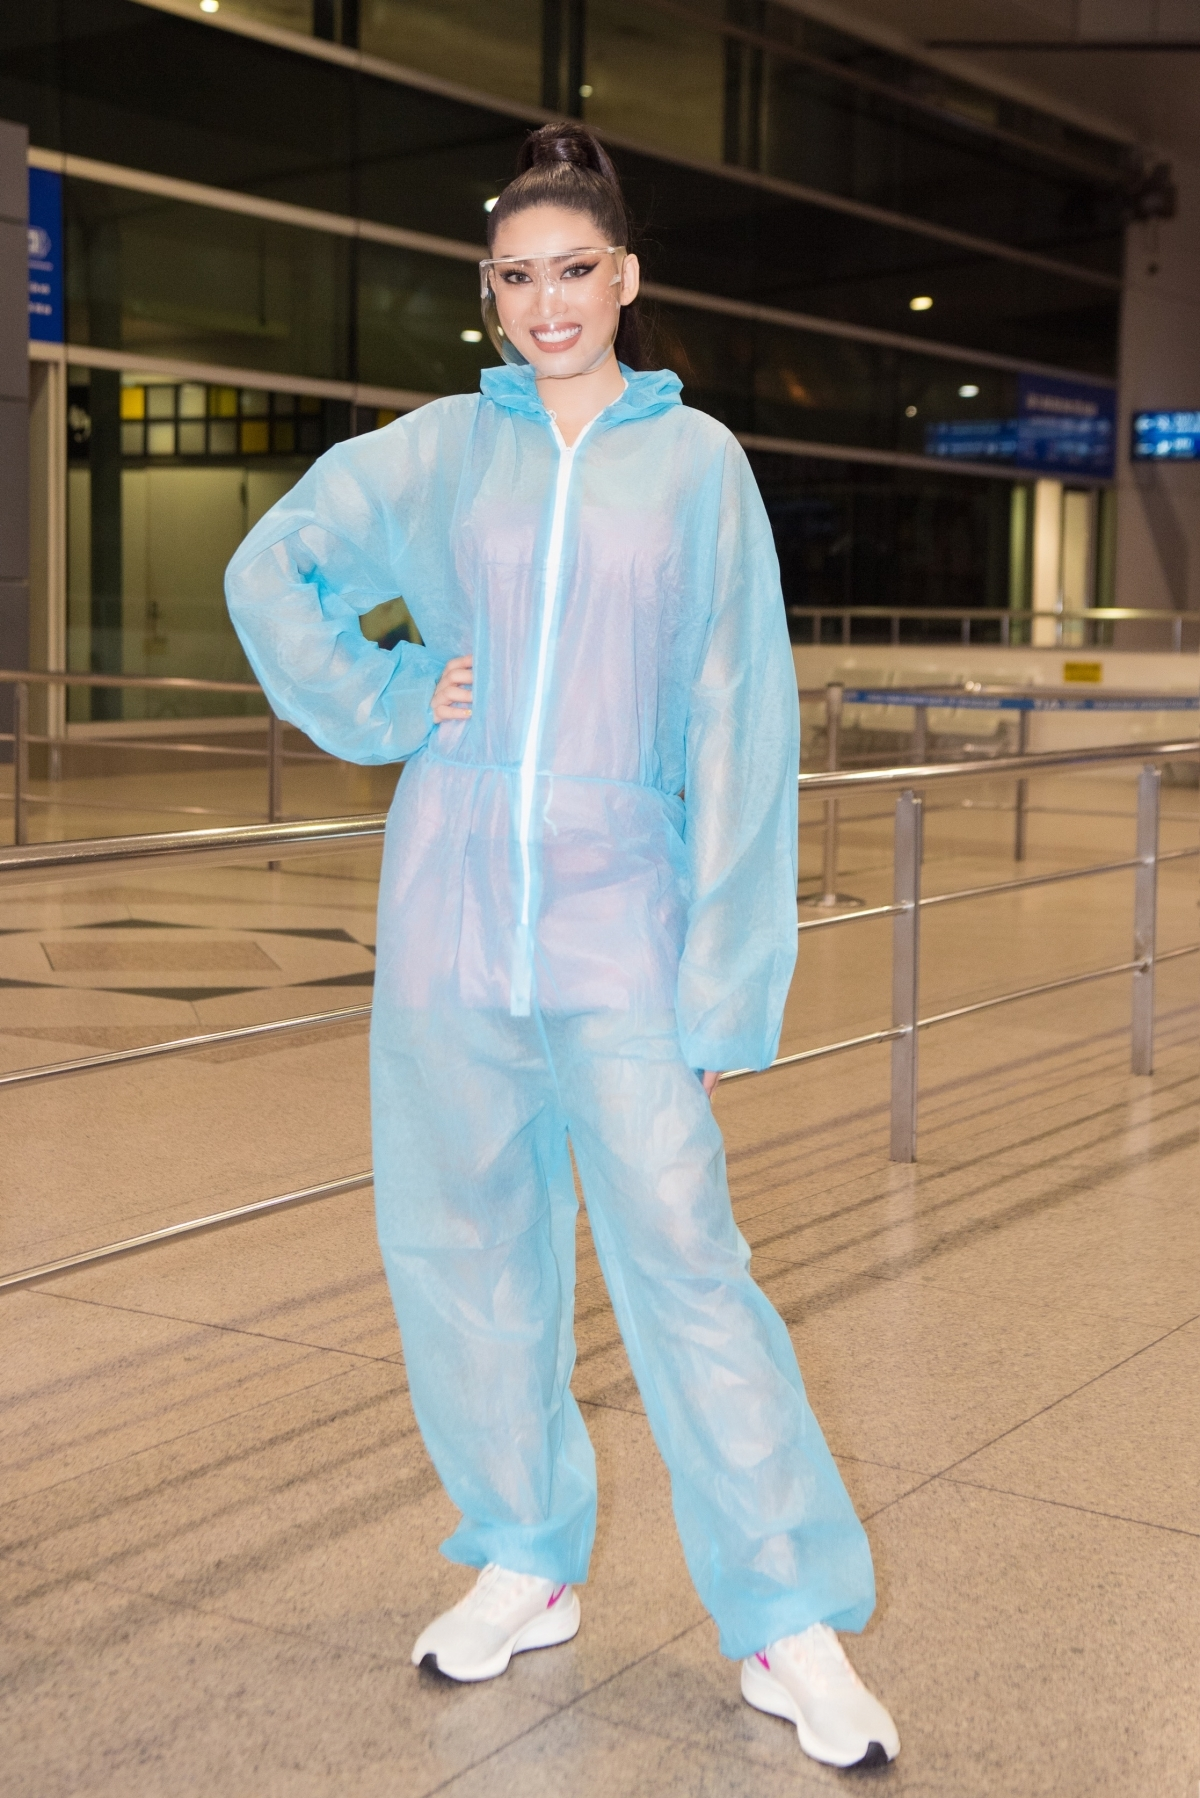 She strictly follows health recommendations against COVID-19 by wearing a personal protective suit before boarding the plane.